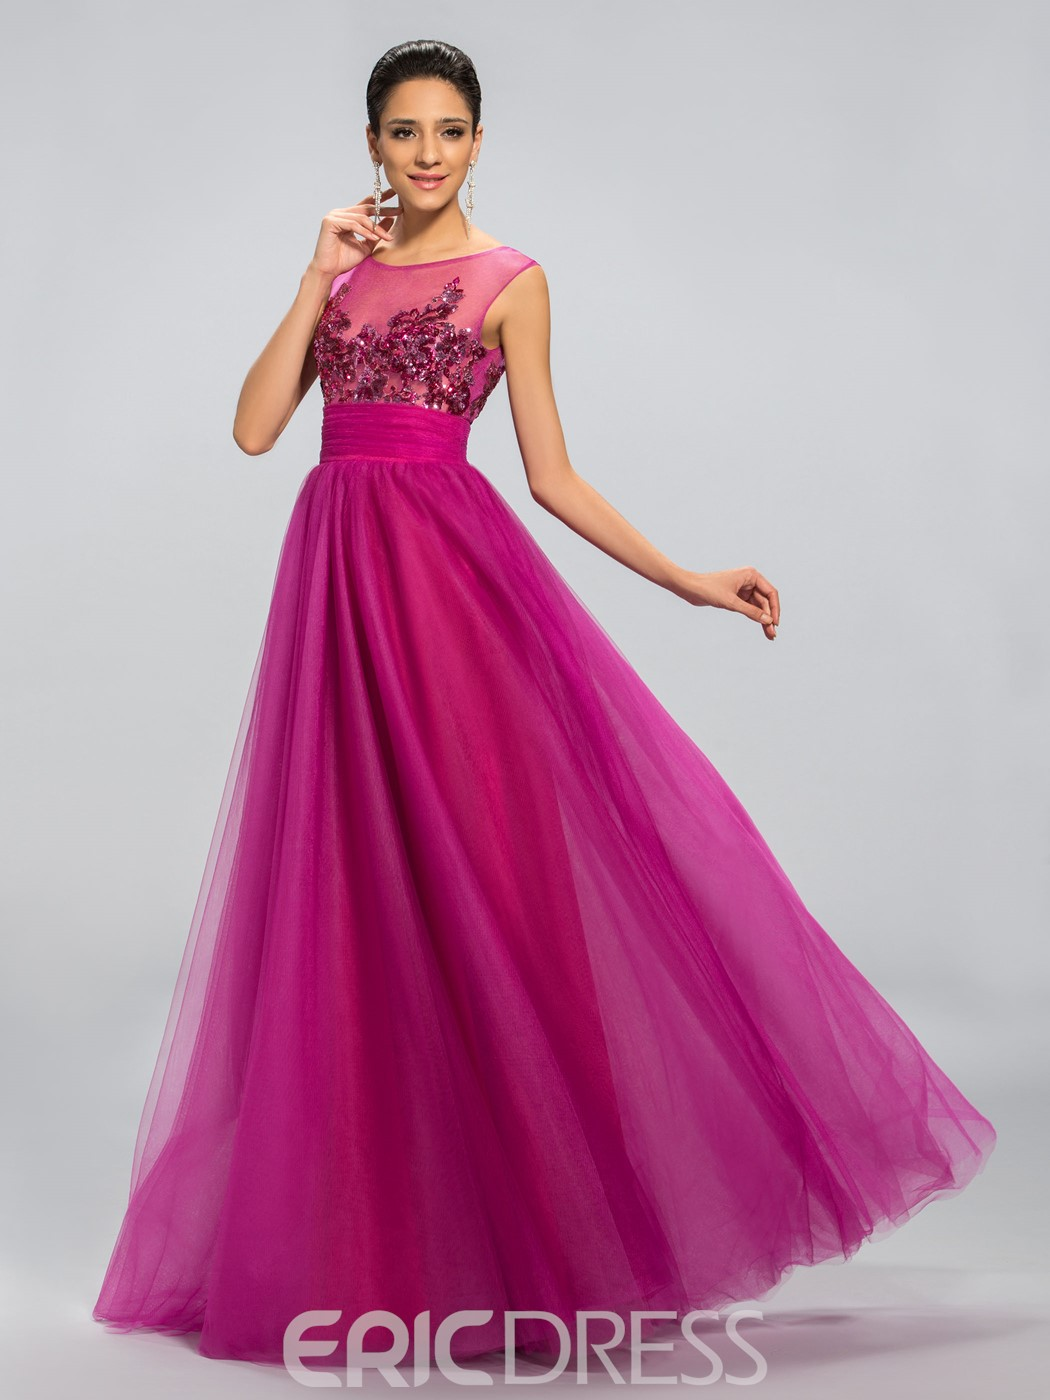 Sequins Appliques A Line Long Prom Dress